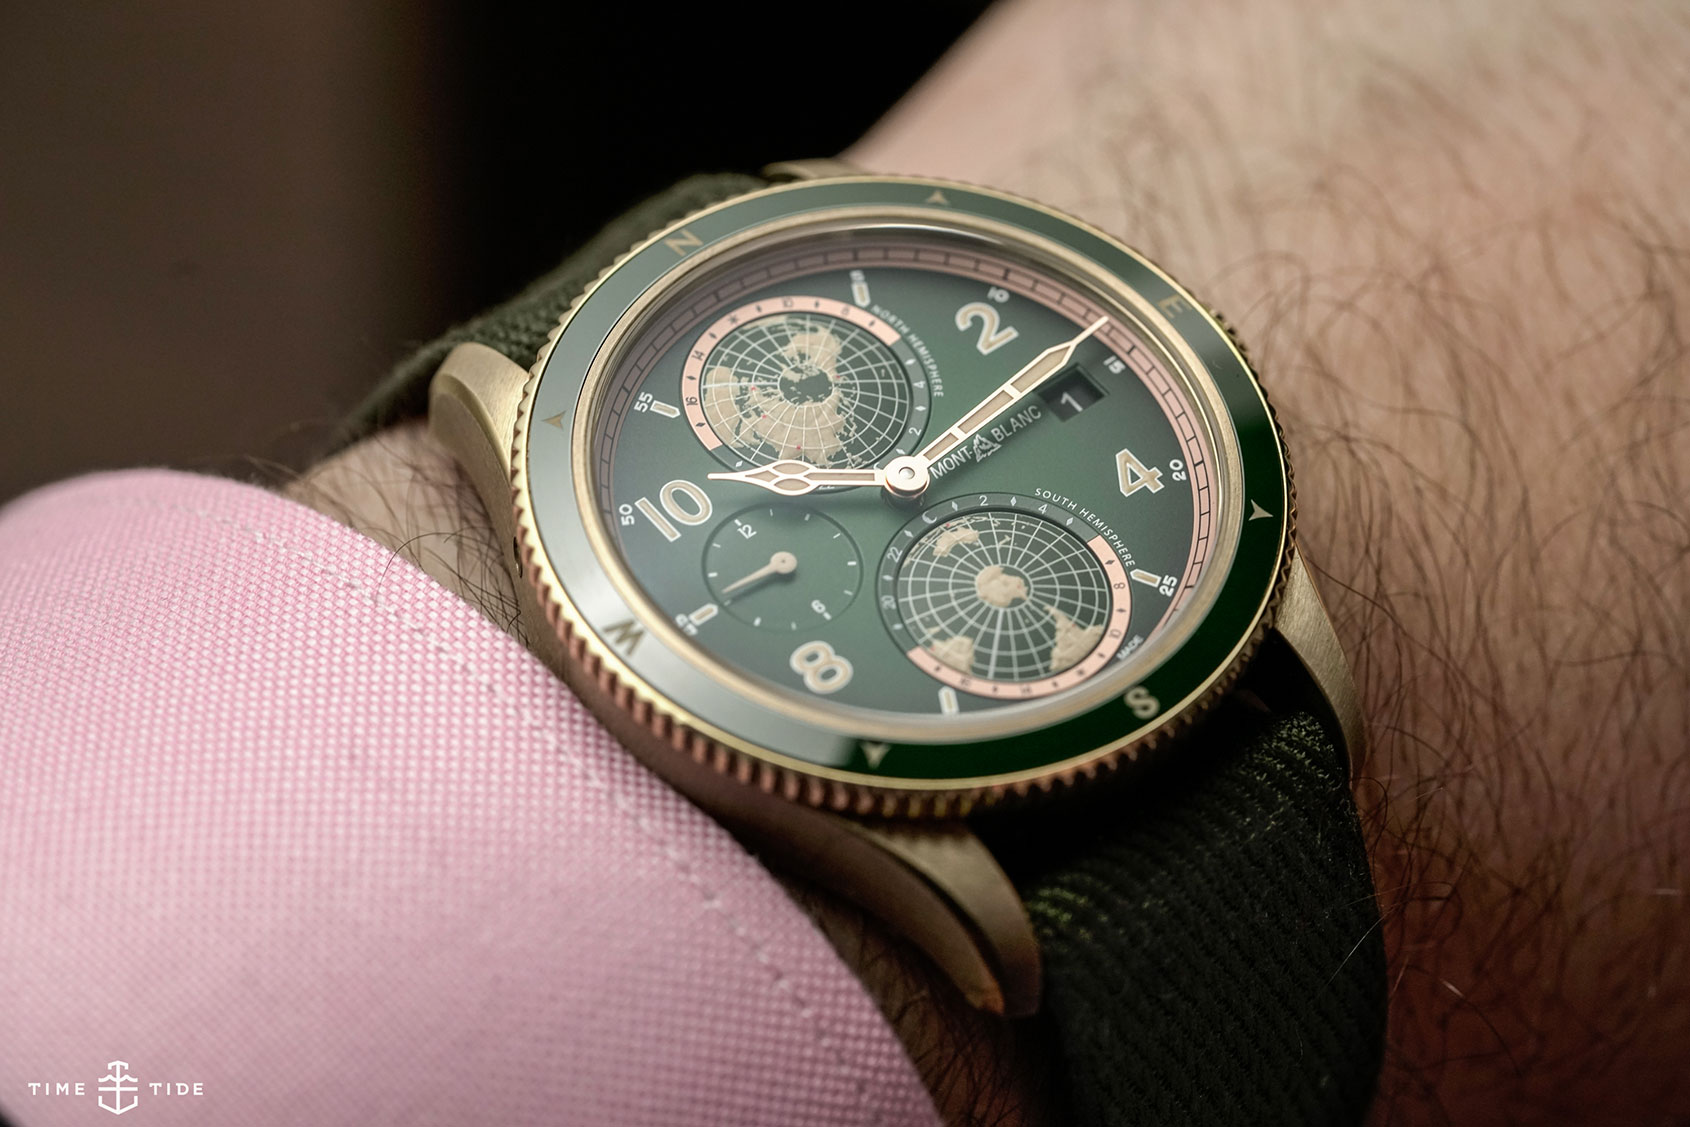 From stylish to rugged – 5 Montblanc watches that cover every base